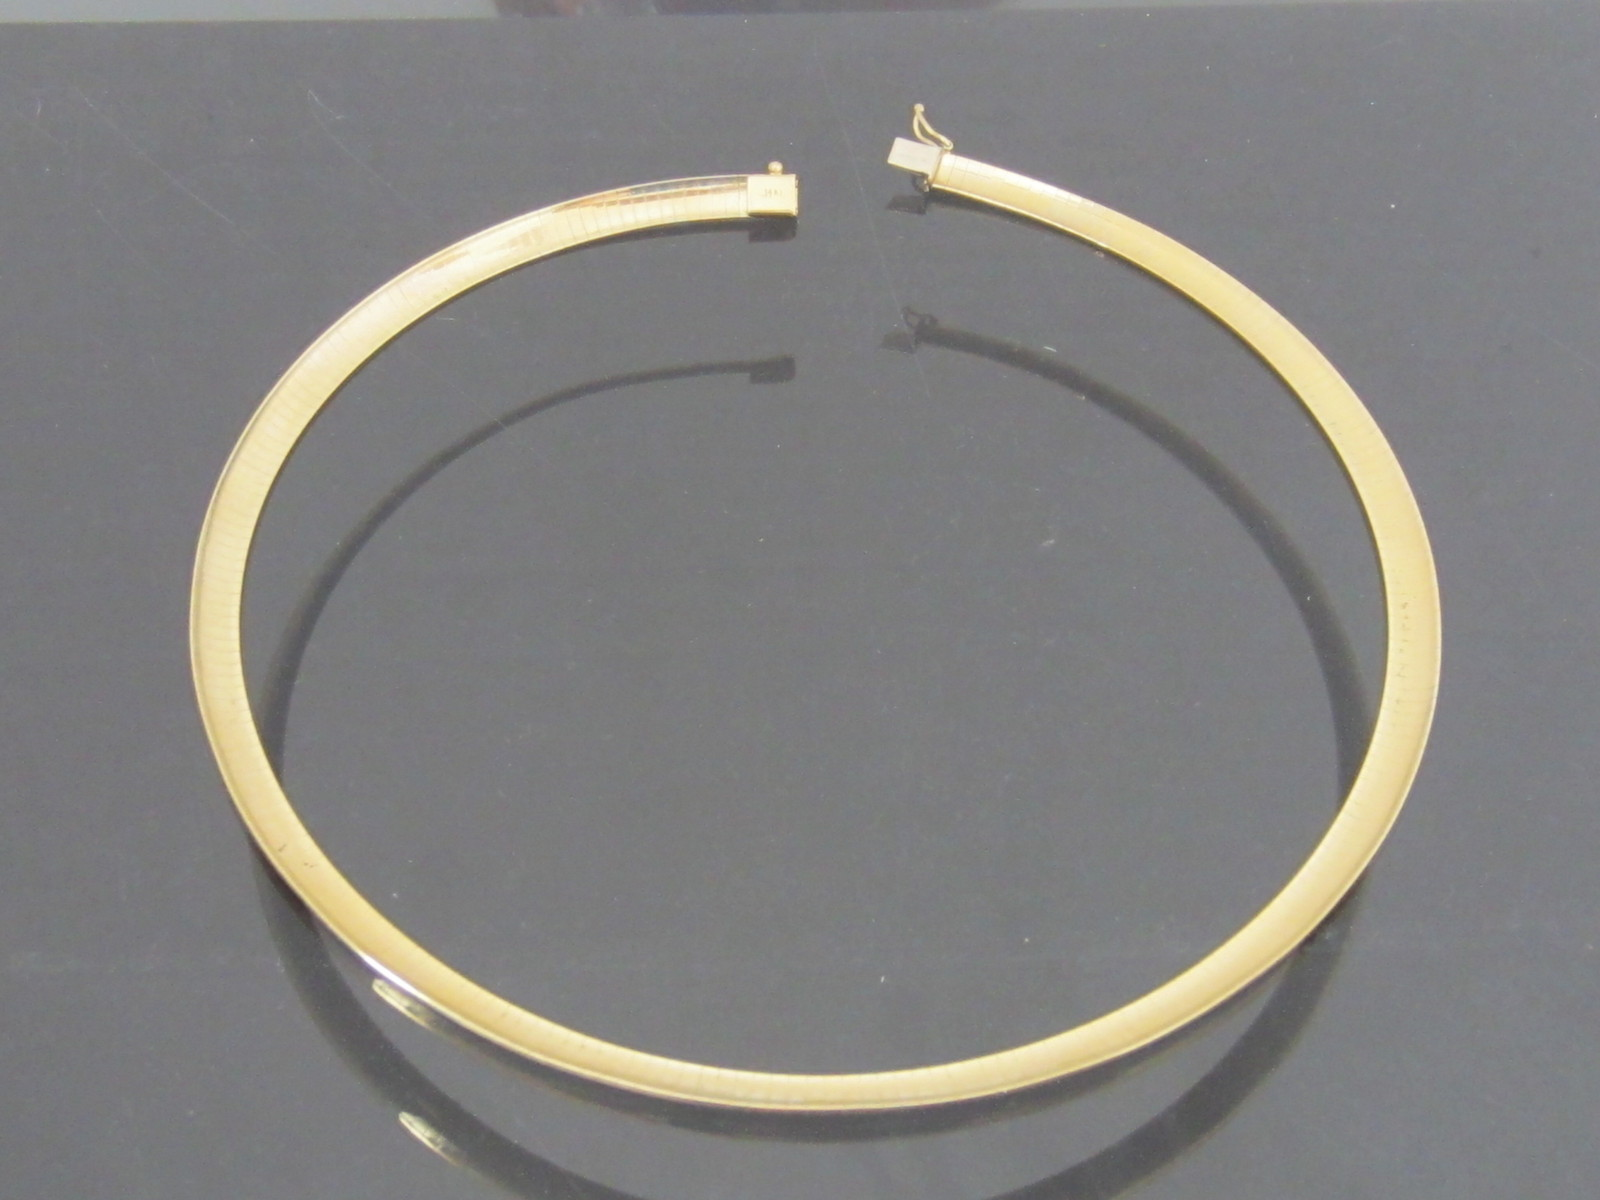 Vintage 14K Solid Yellow Gold Omega Chain Necklace 16'' Length